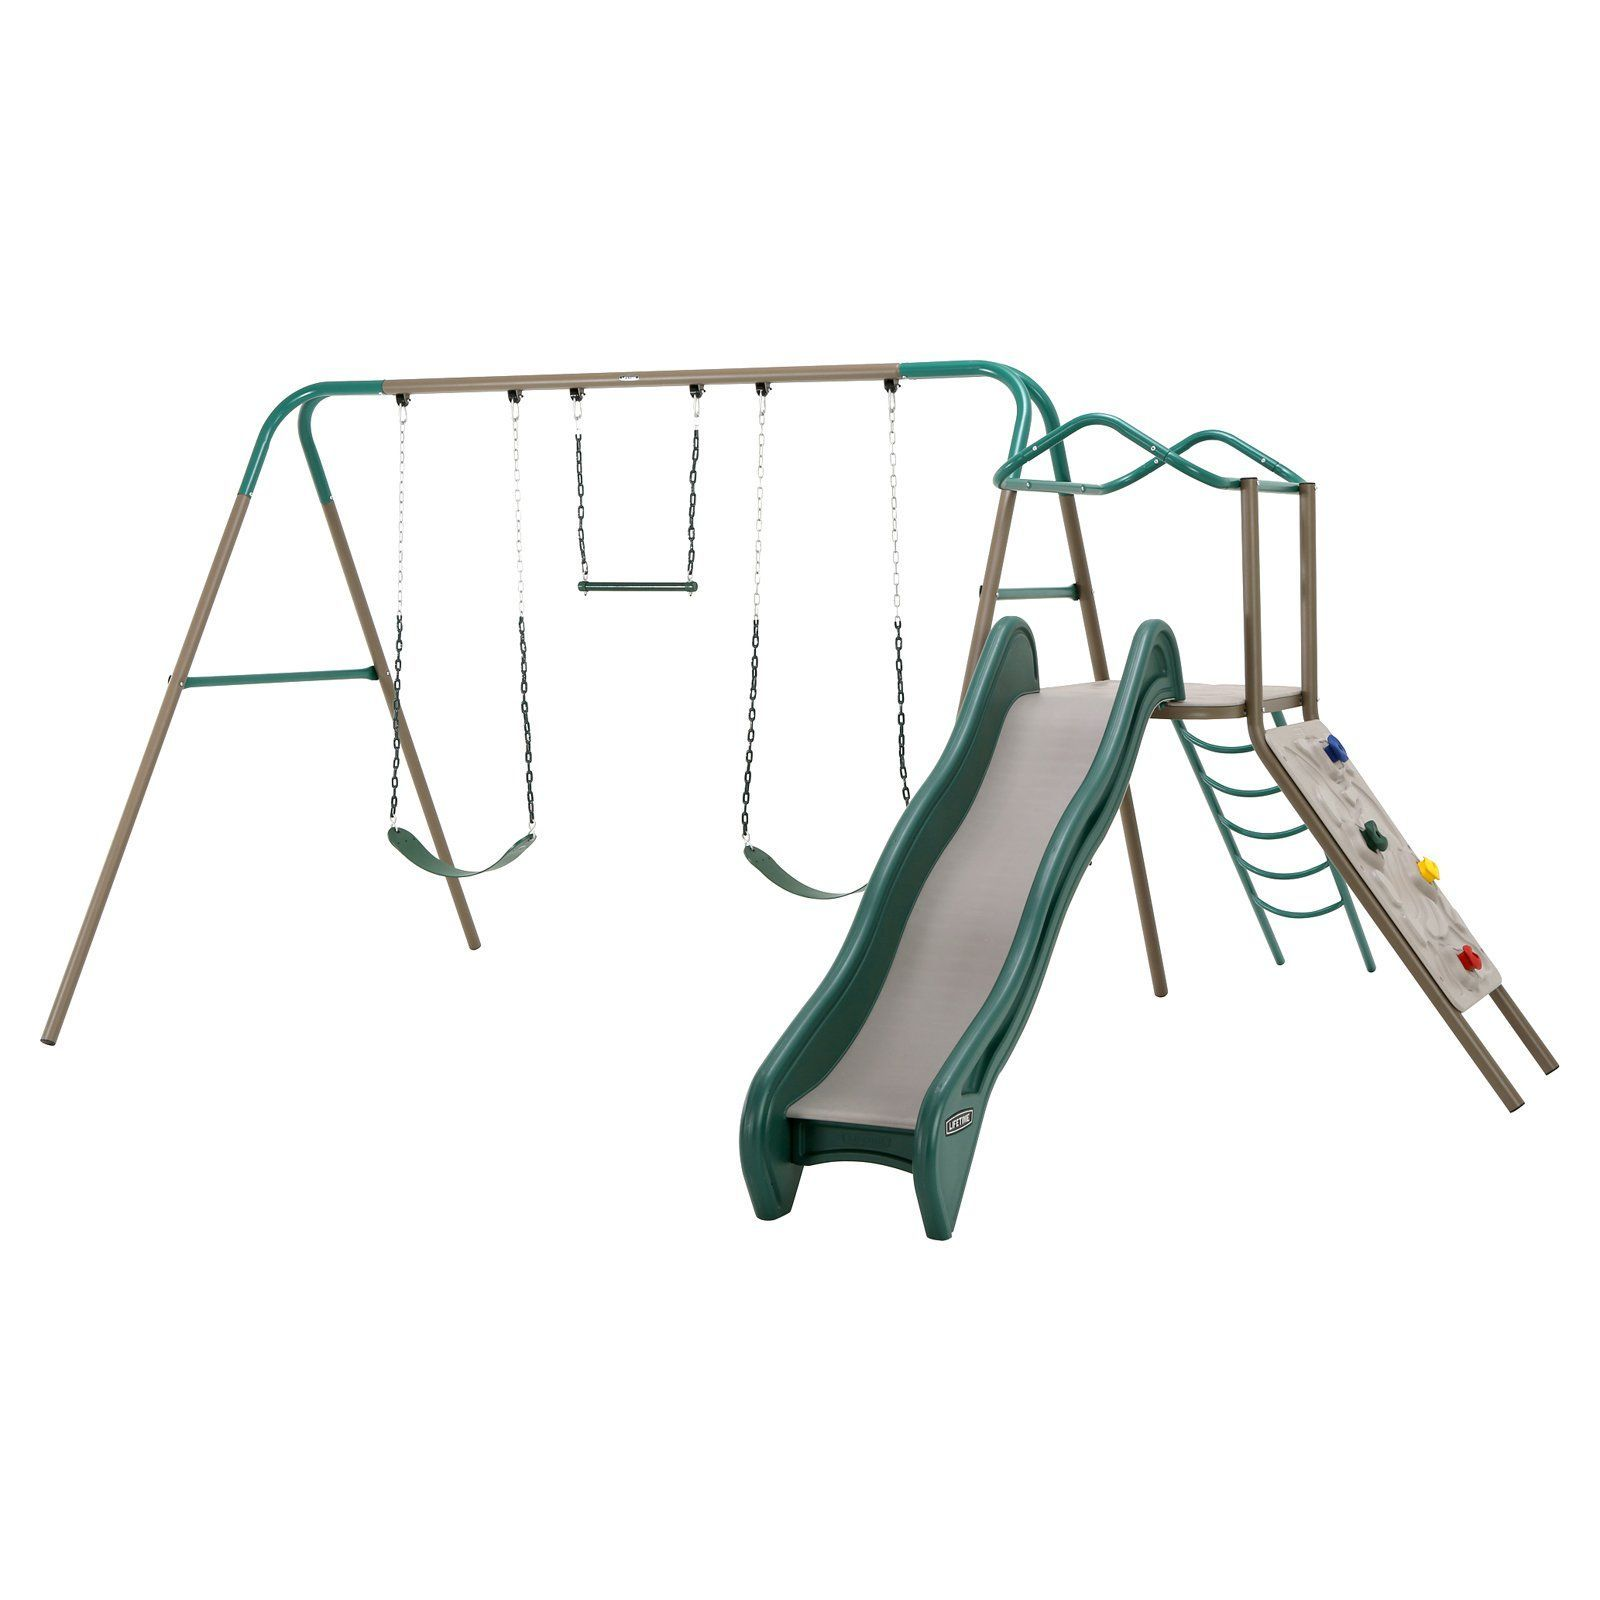 Lifetime products climb and slide swing set products